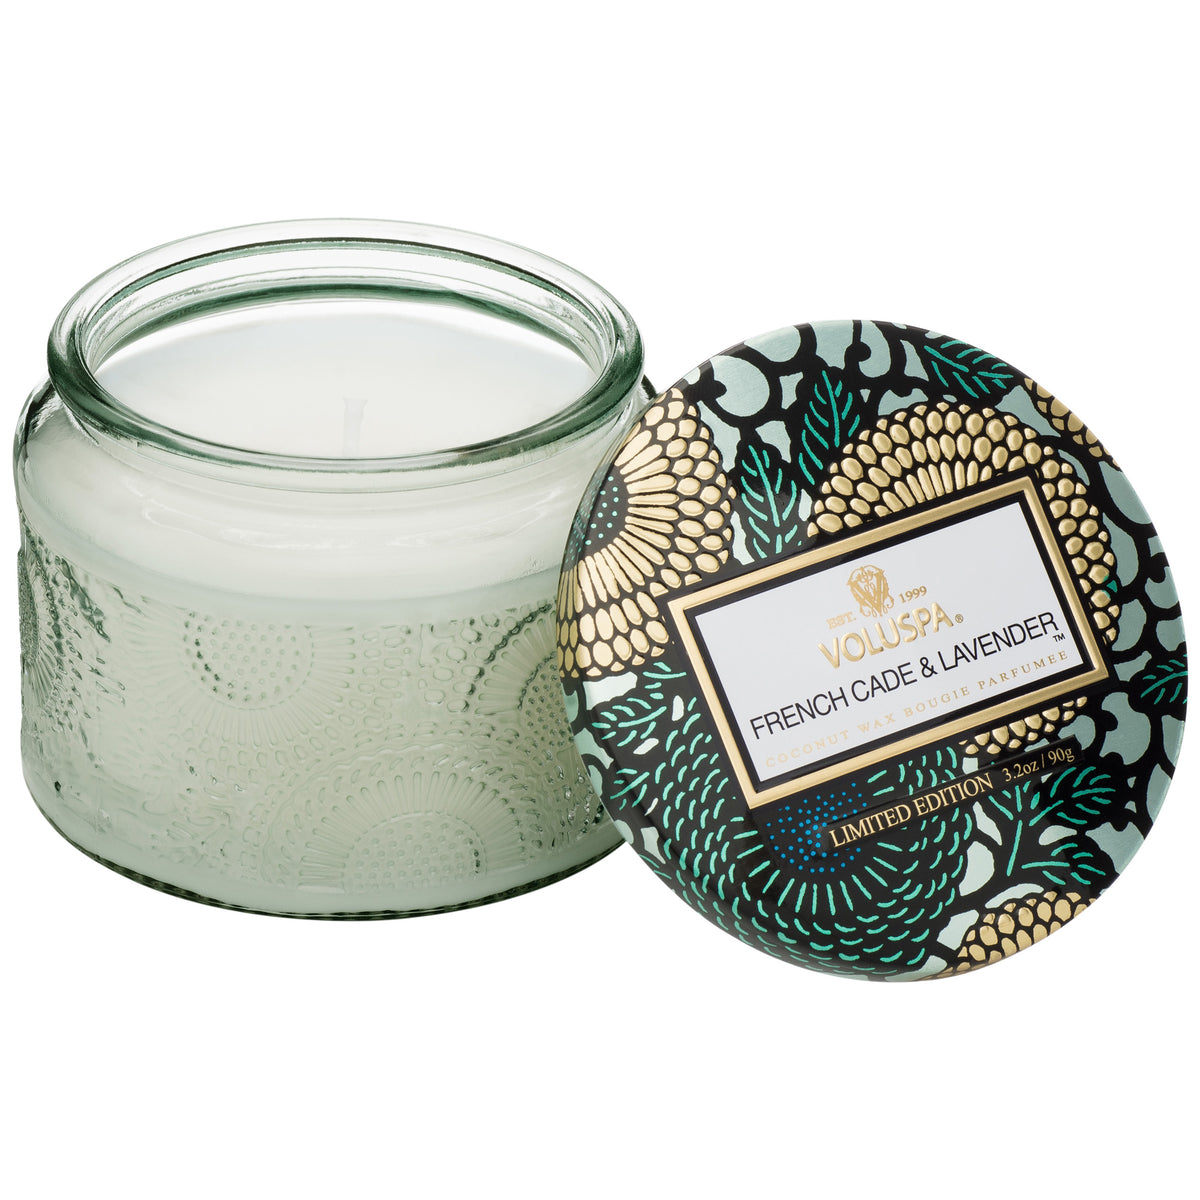 French Cade Lavender - Petite Jar Candle - 2